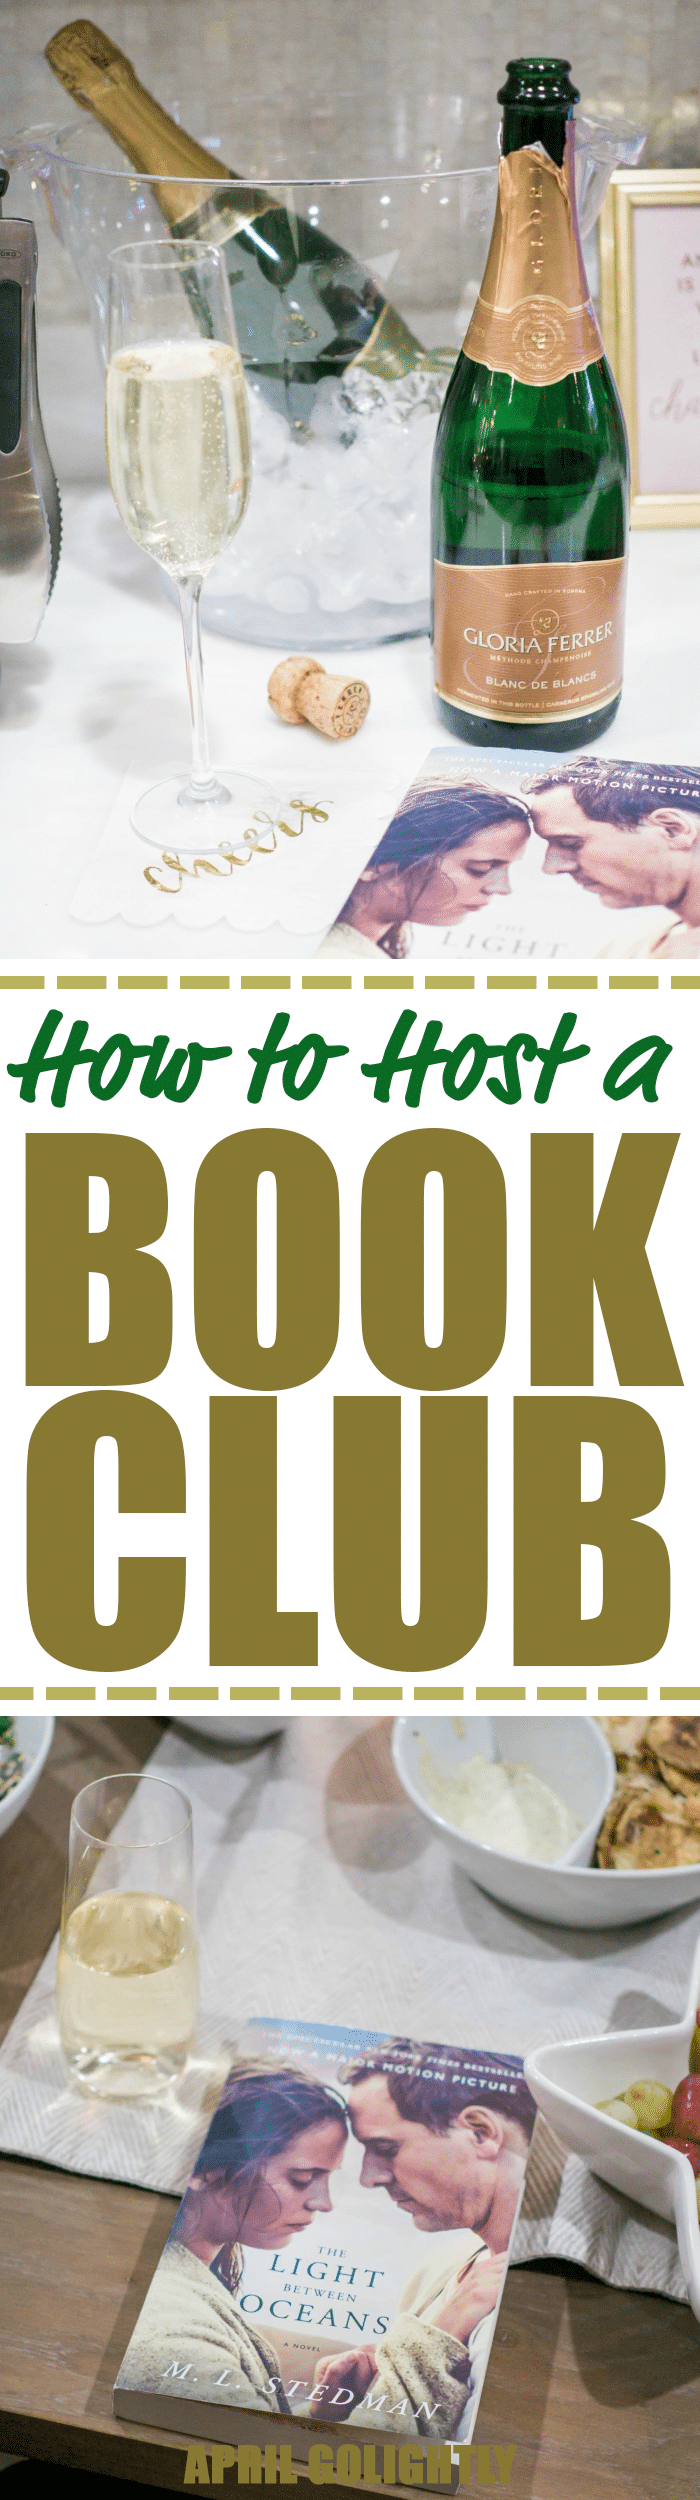 How to Host a Book Club with Wine with a full party plan with quiz and prizes, food ideas and wine pairings and printed sheets about the wine